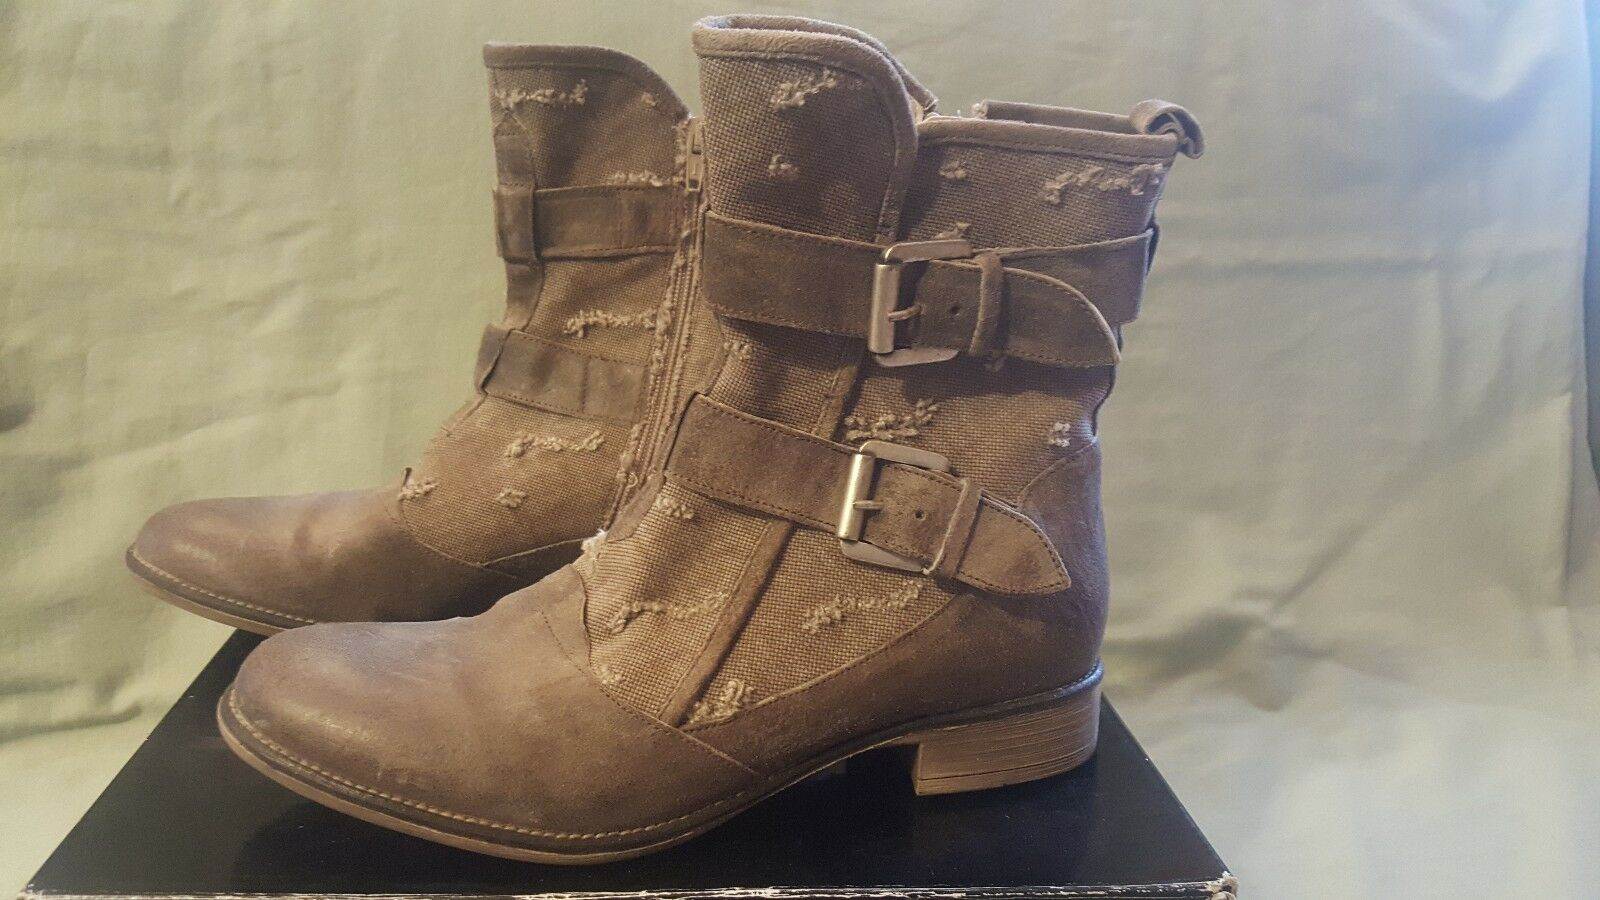 Boutique 9 Distressed Taupe Ankle Boot Größe 8.5